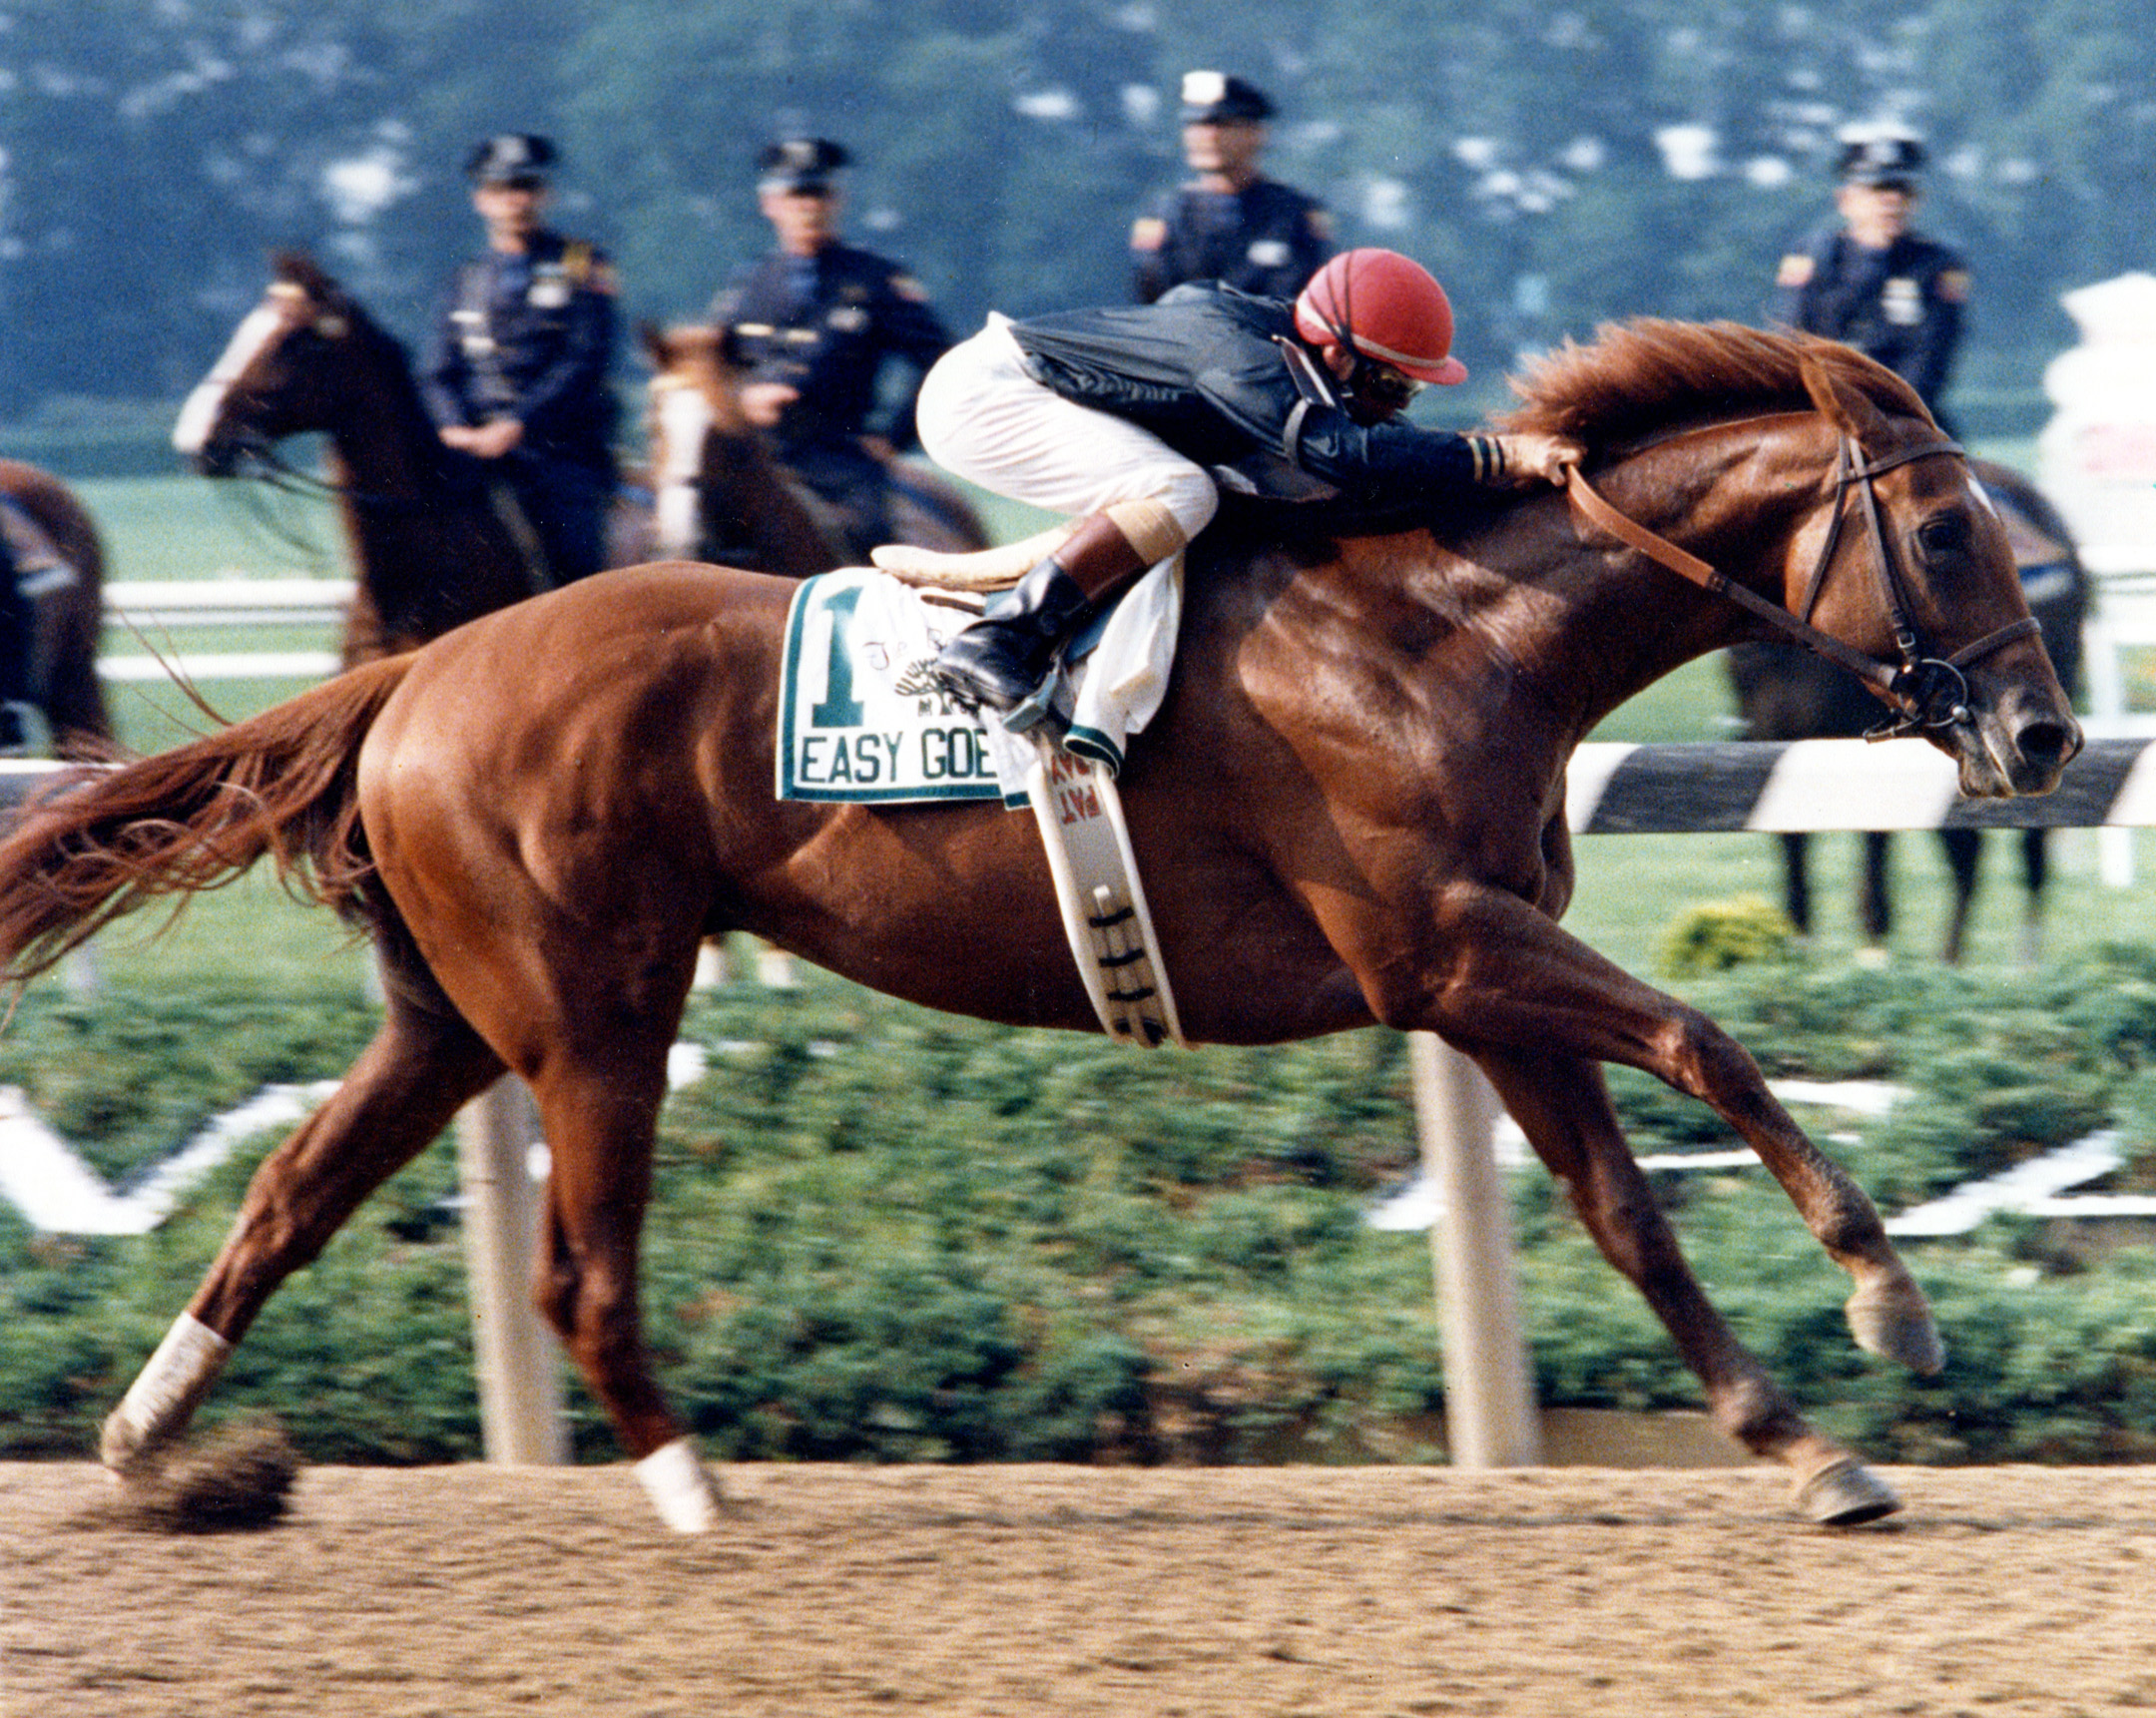 Easy Goer (Pat Day up) winning the 1989 Belmont Stakes (NYRA/Bob Coglianese /Museum Collection)